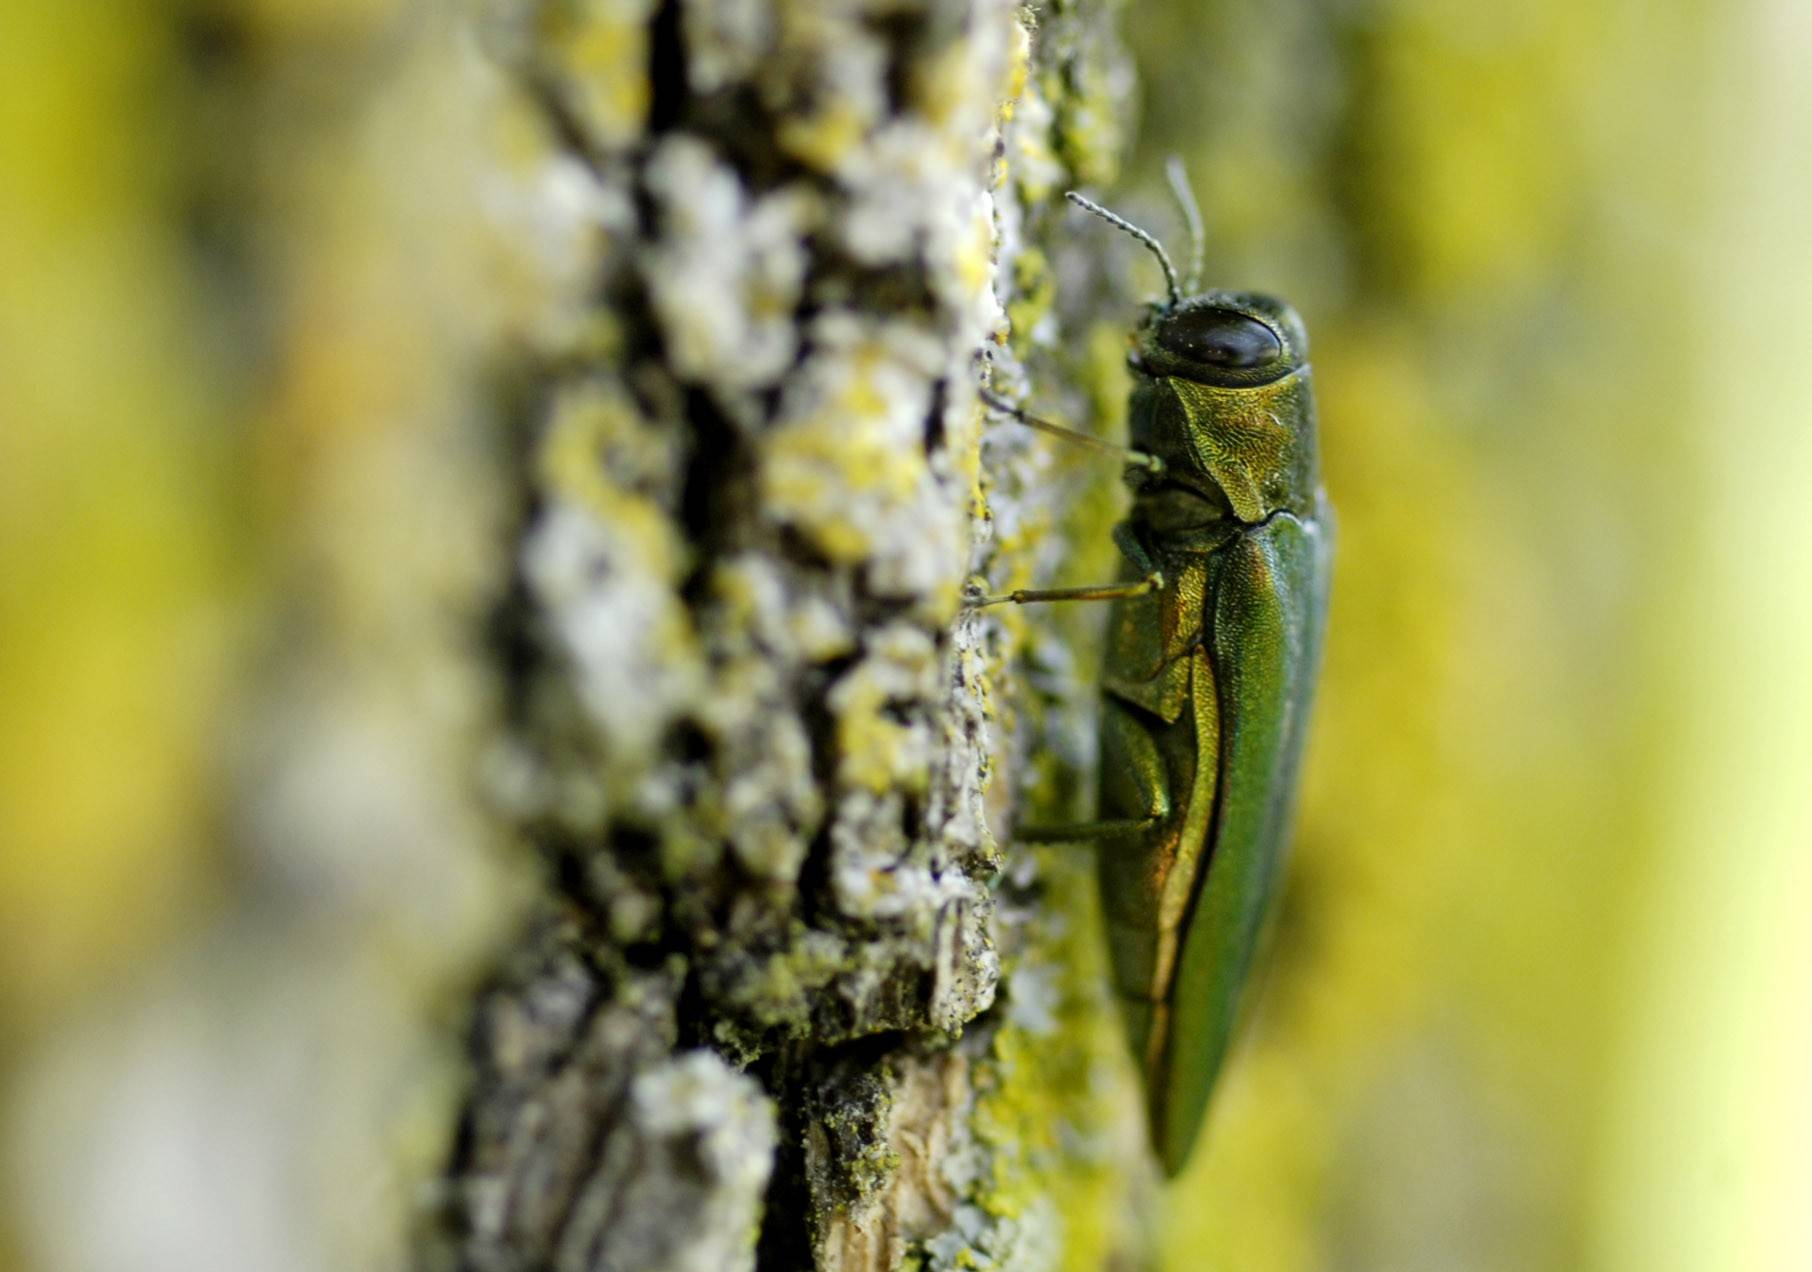 The Wheaton City Council debated how to move forward in its battle against the Emerald Ash Borer during a planning session Monday.